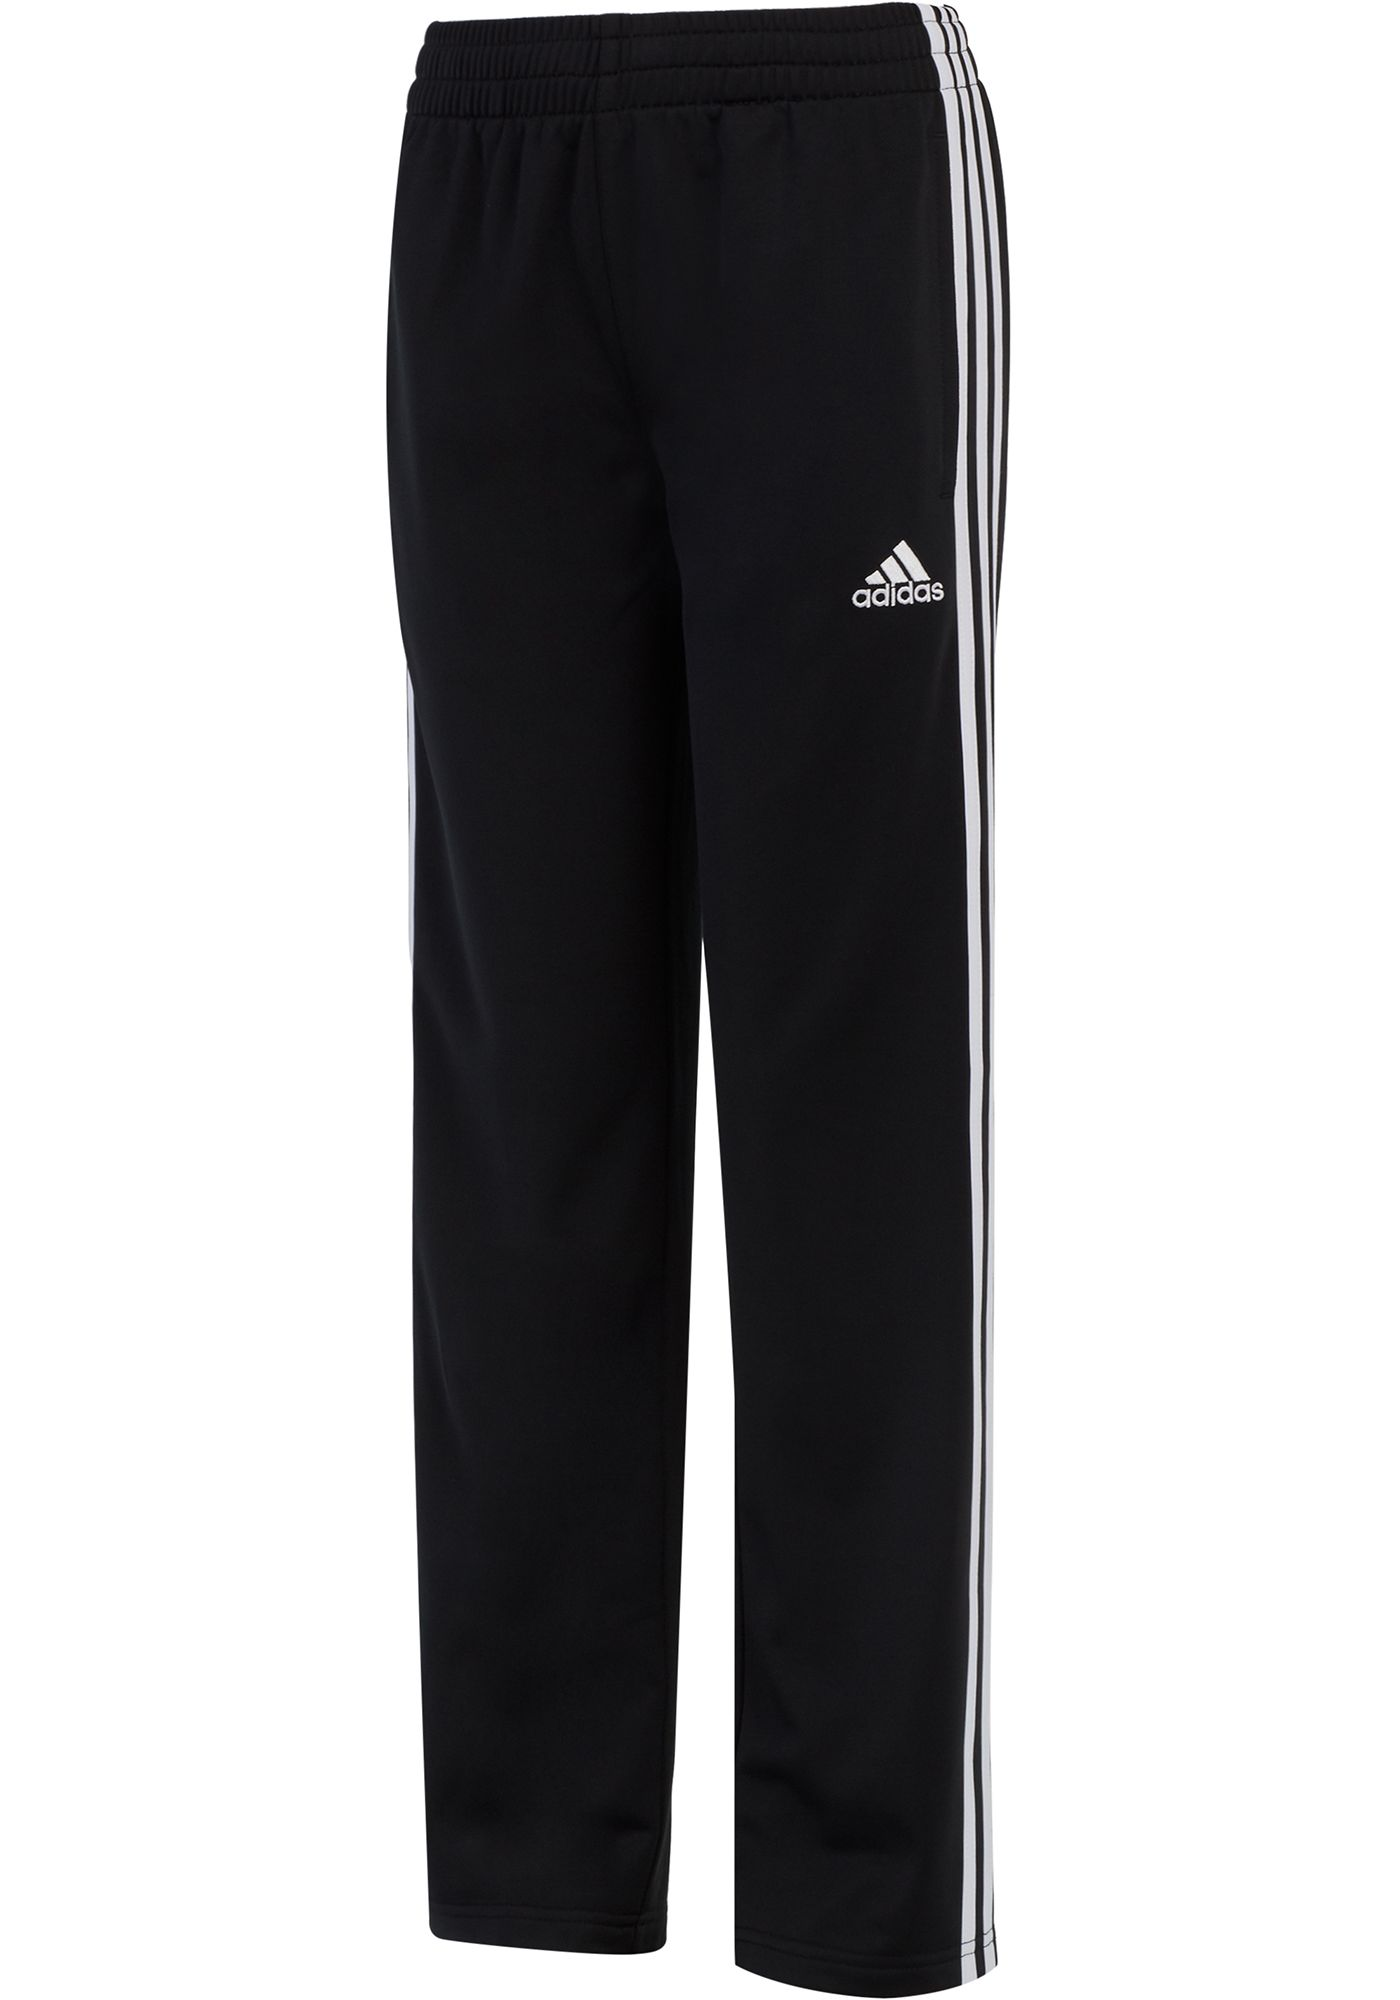 adidas Little Boys' Iconic Tricot Pants